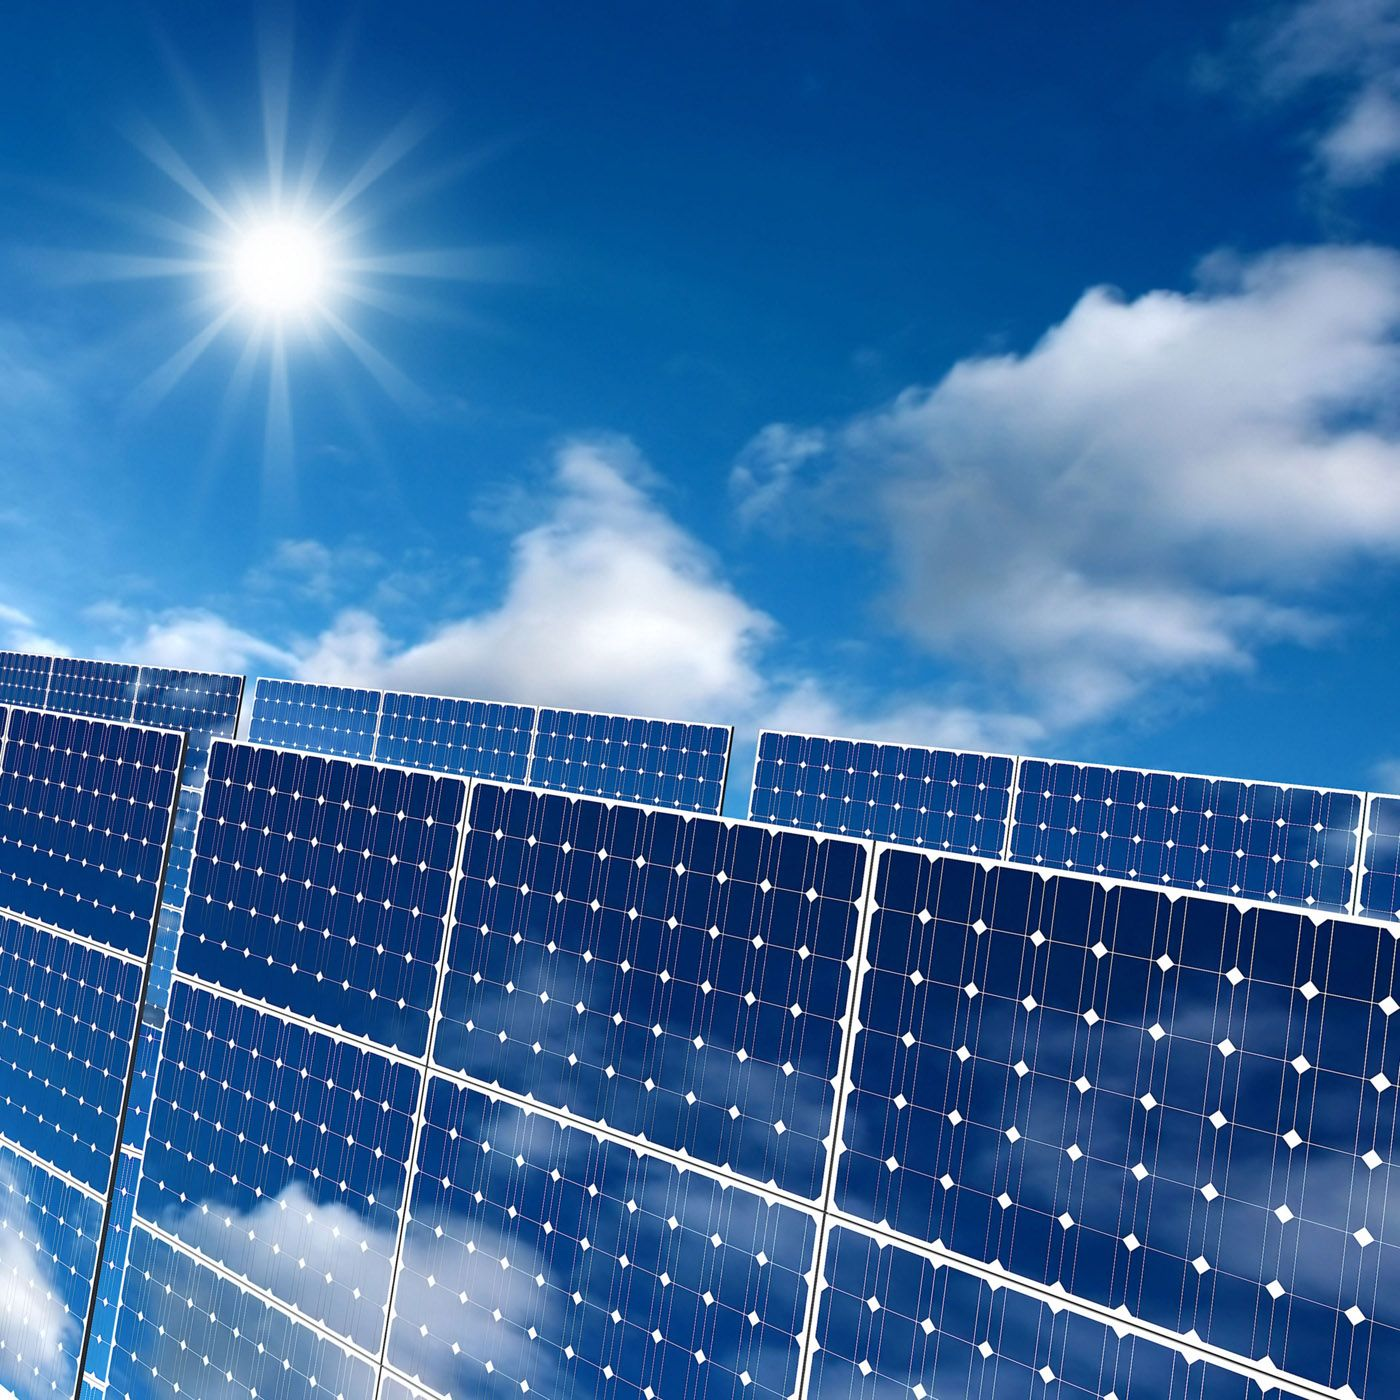 Ahmedabad Municipal Corporation Is All Set To Install Solar Power In The City By Using Solar Power In Three Buildings To Meet The Daily Energy Needs Http Www